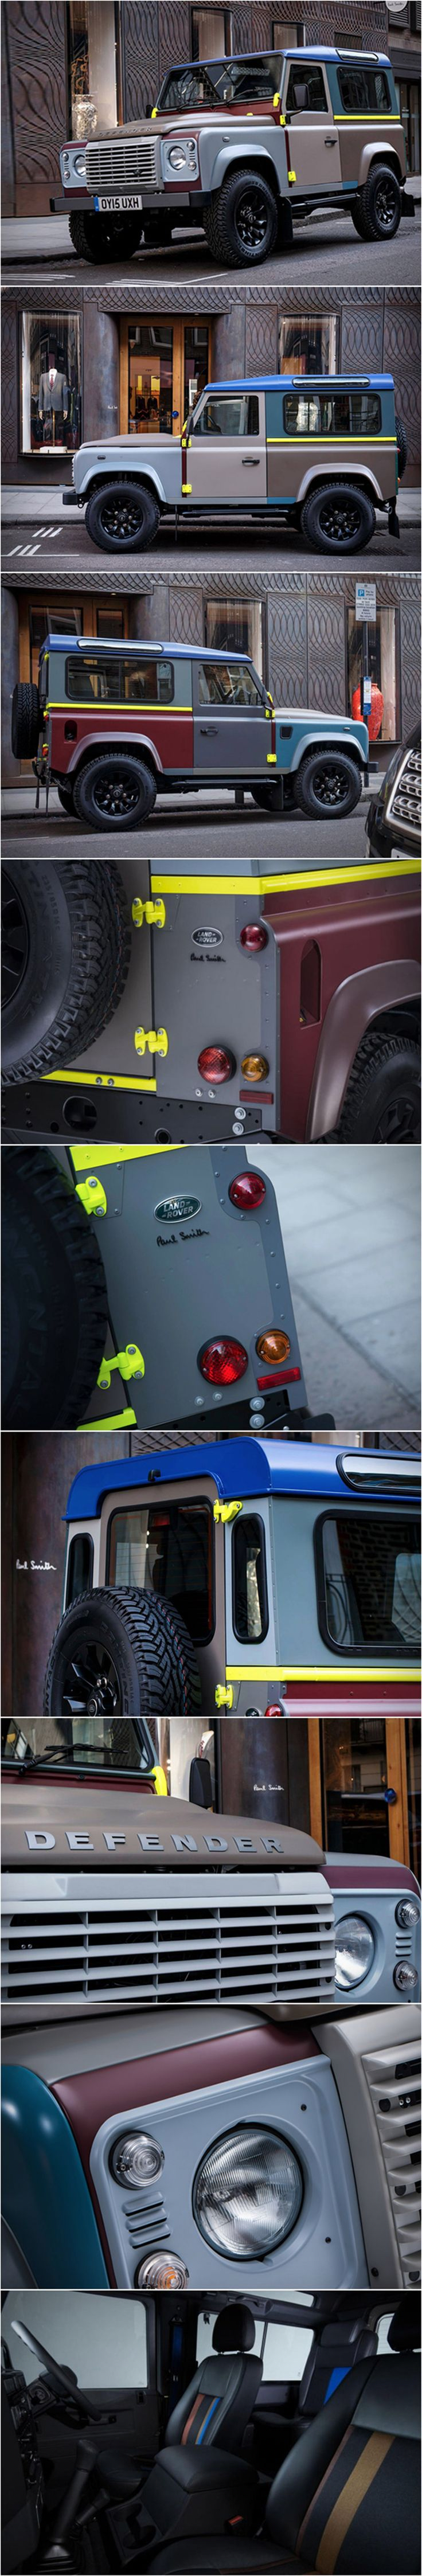 Special Edition Land Rover Defender by Paul Smith. Yes Please!